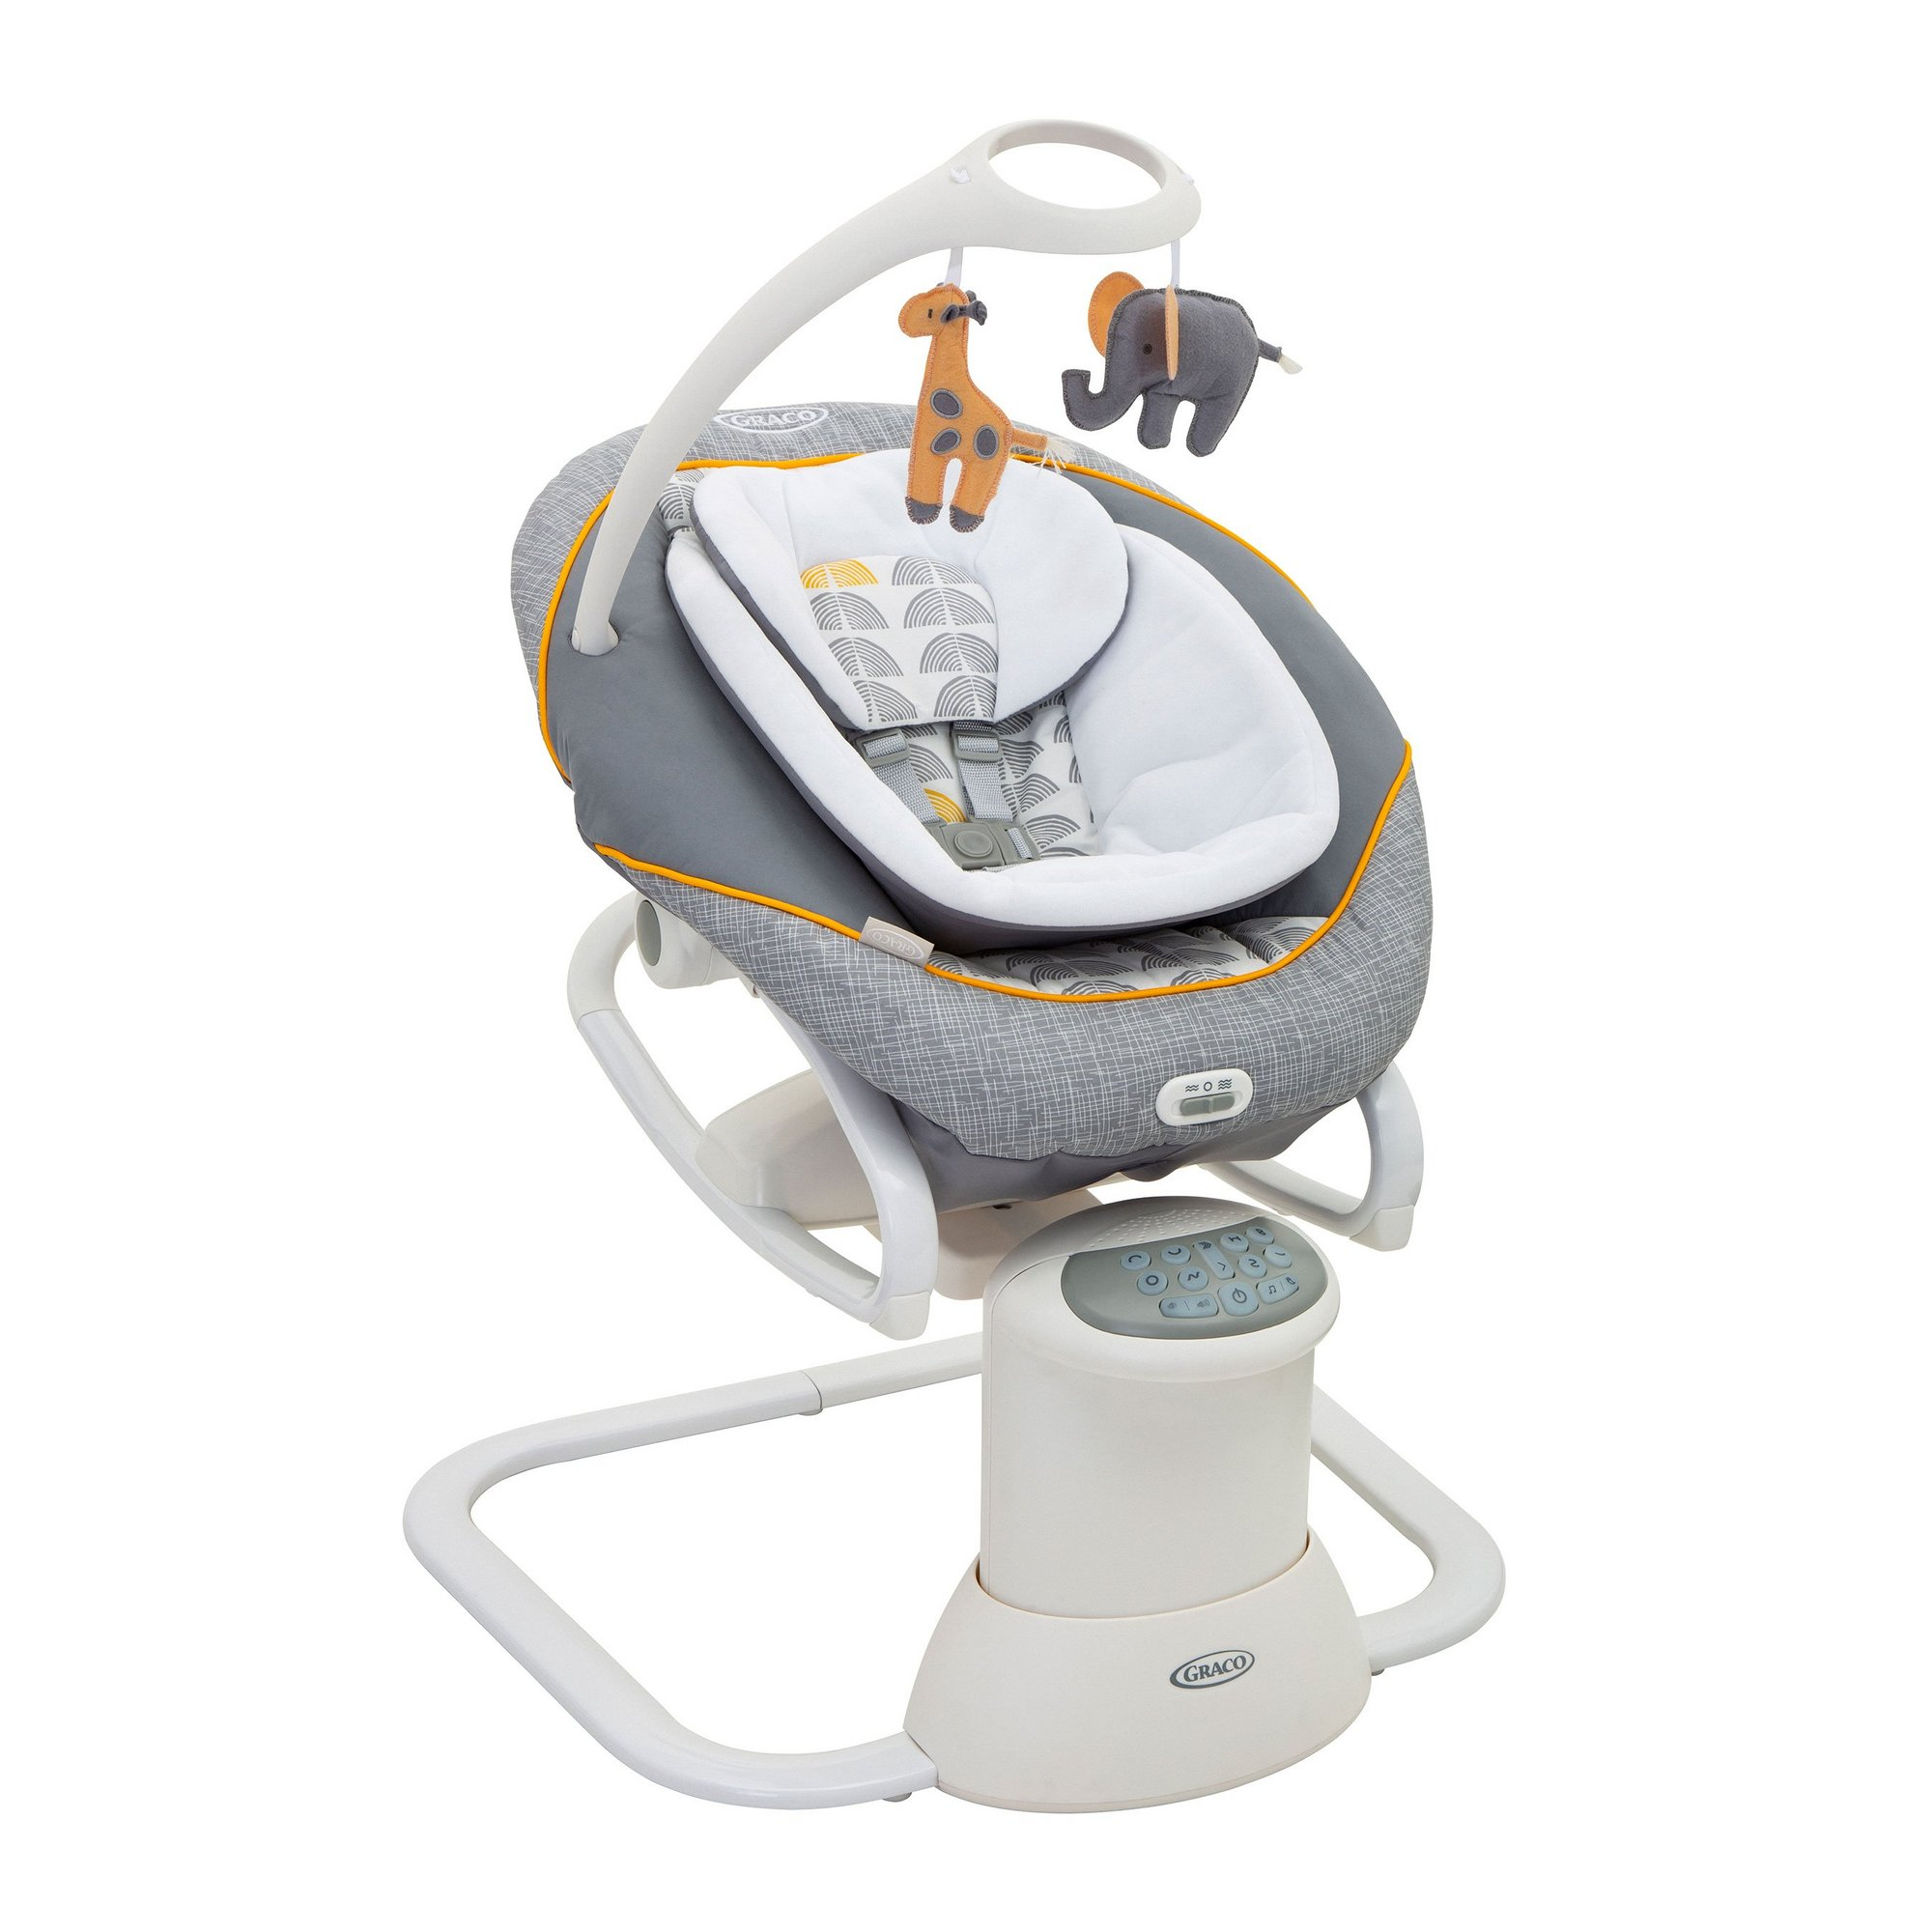 Image of Graco Horizon All Ways Soother